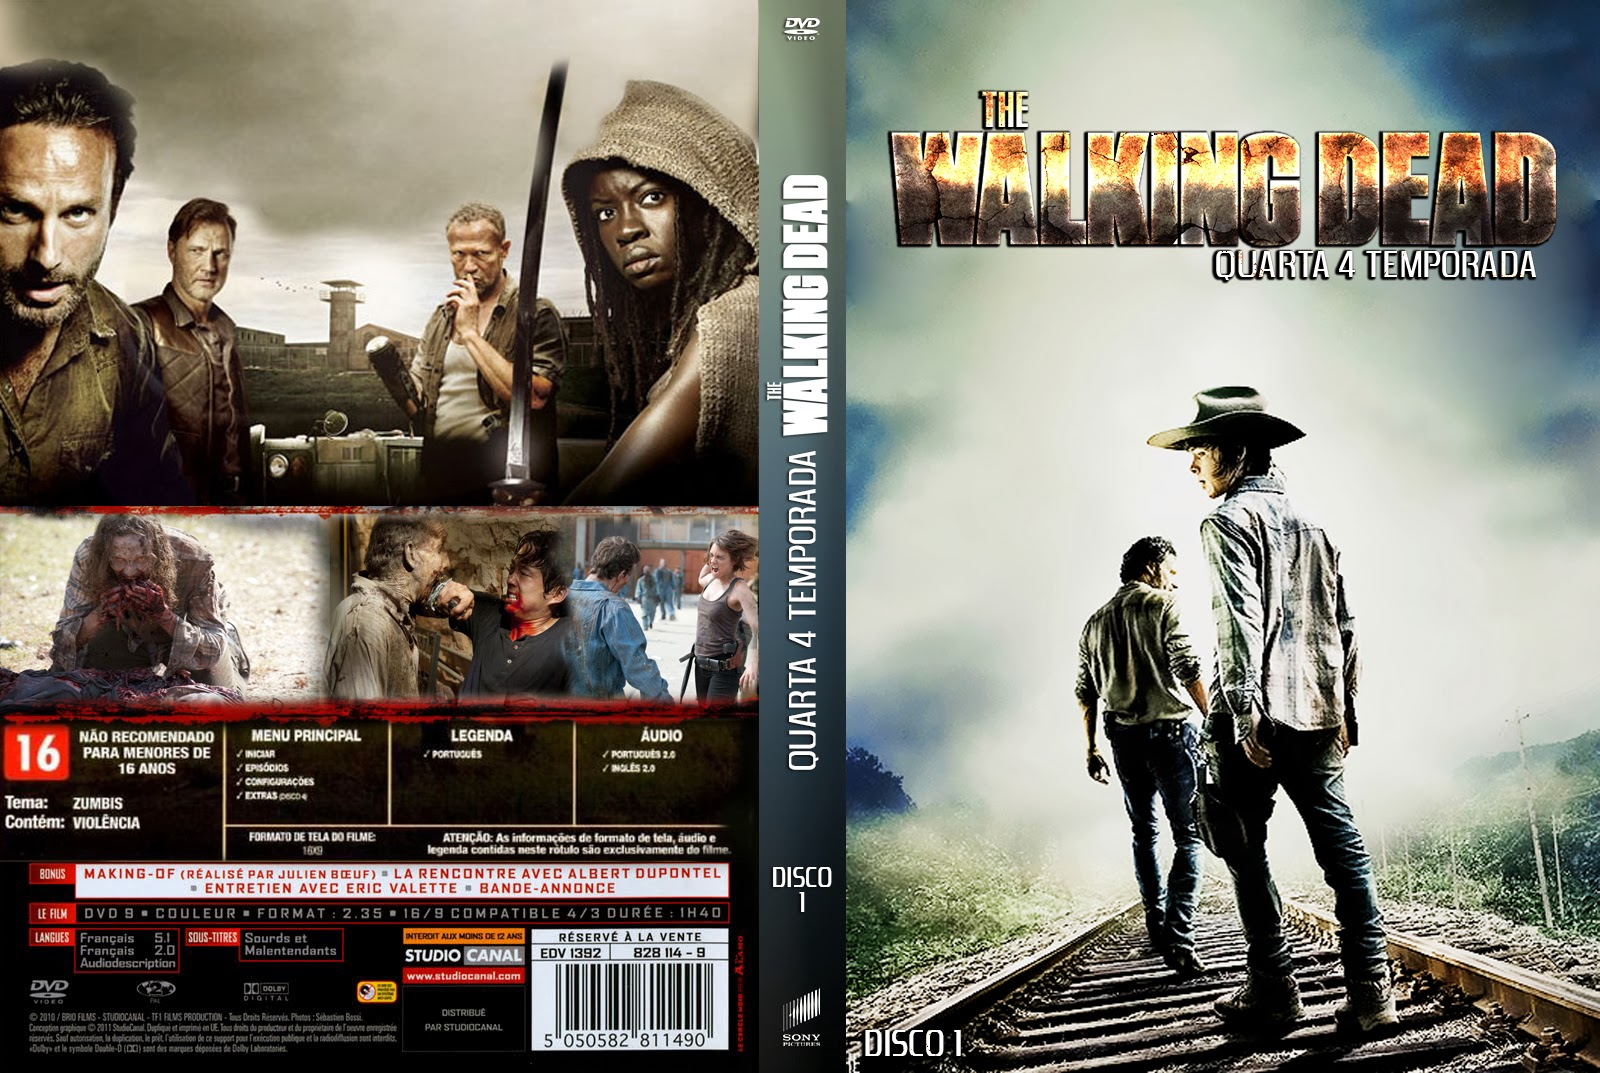 THE WALKING DEAD 4ª TEMPORADA DISCO: 1, 2 E 3 ~ ZICA TOP CAPAS